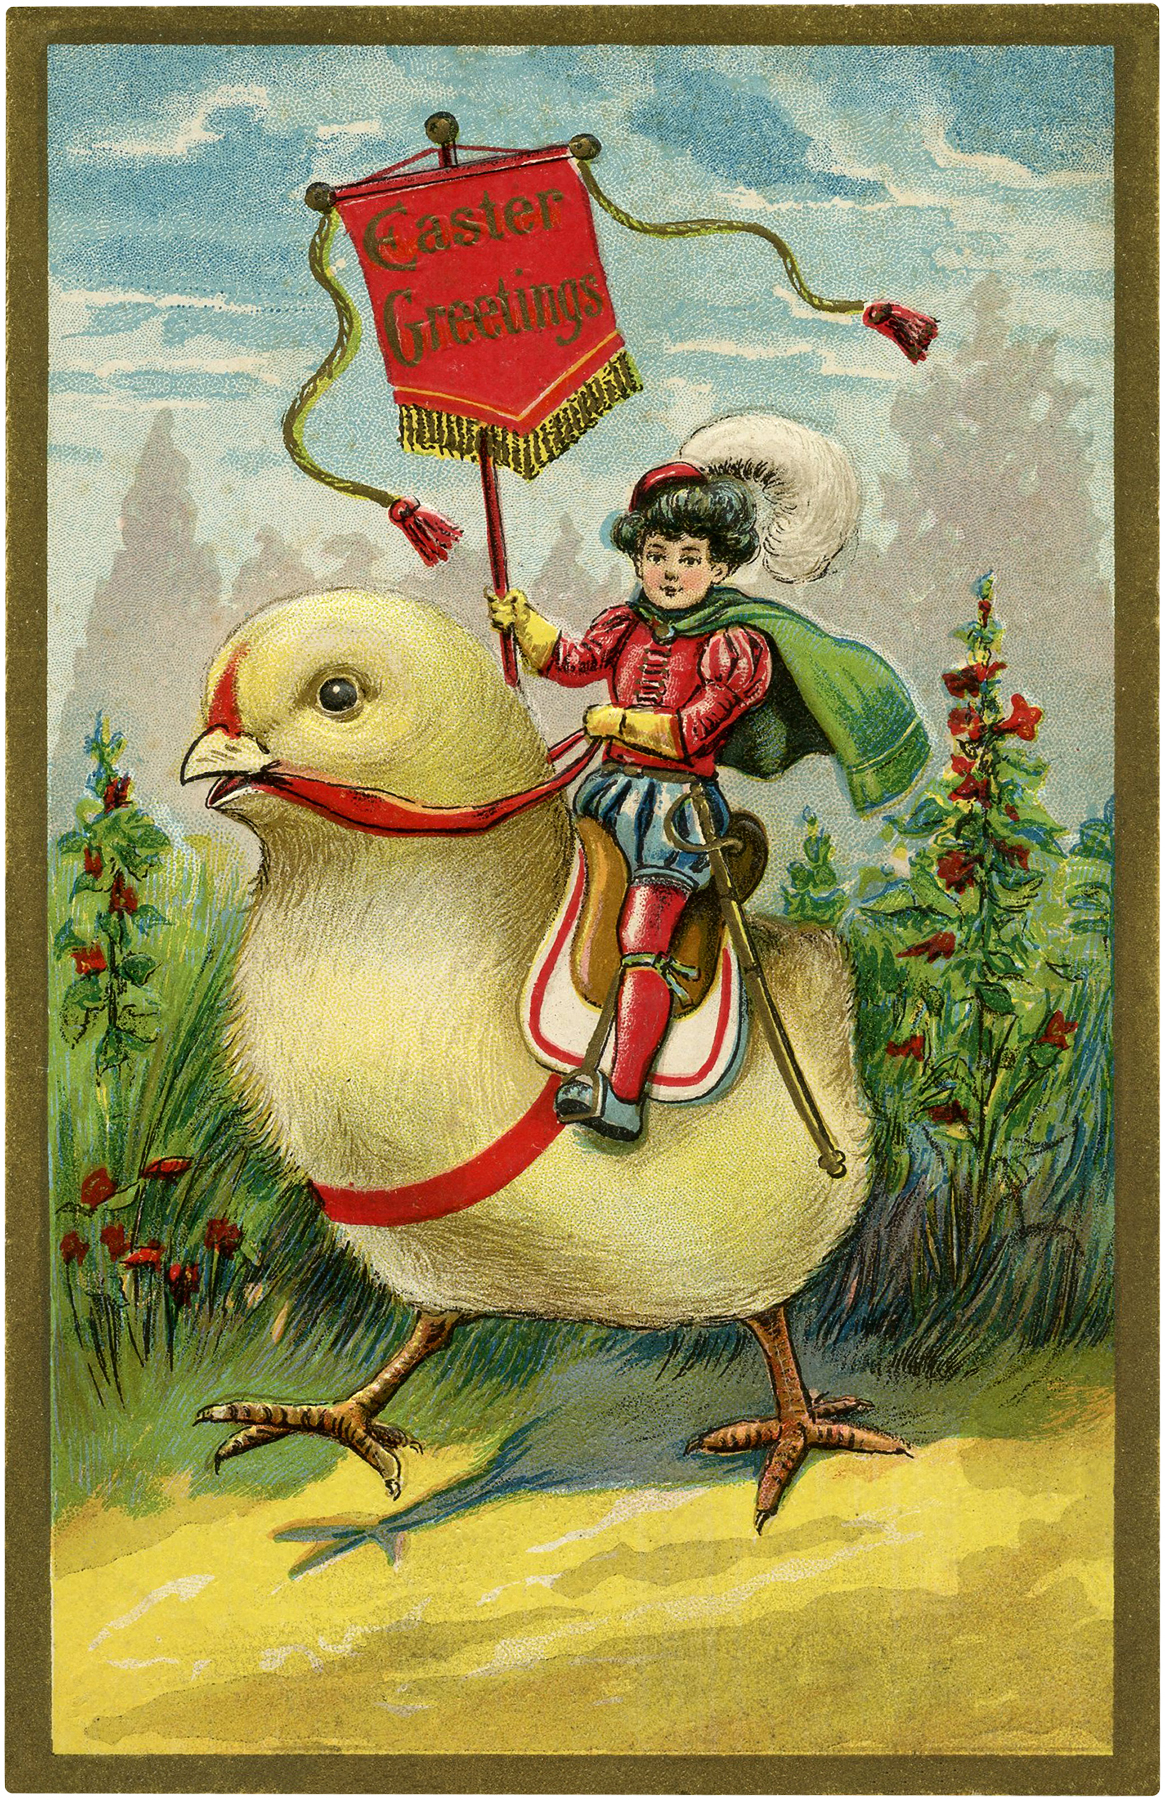 Quirky Easter Chick Ride Image The Graphics Fairy